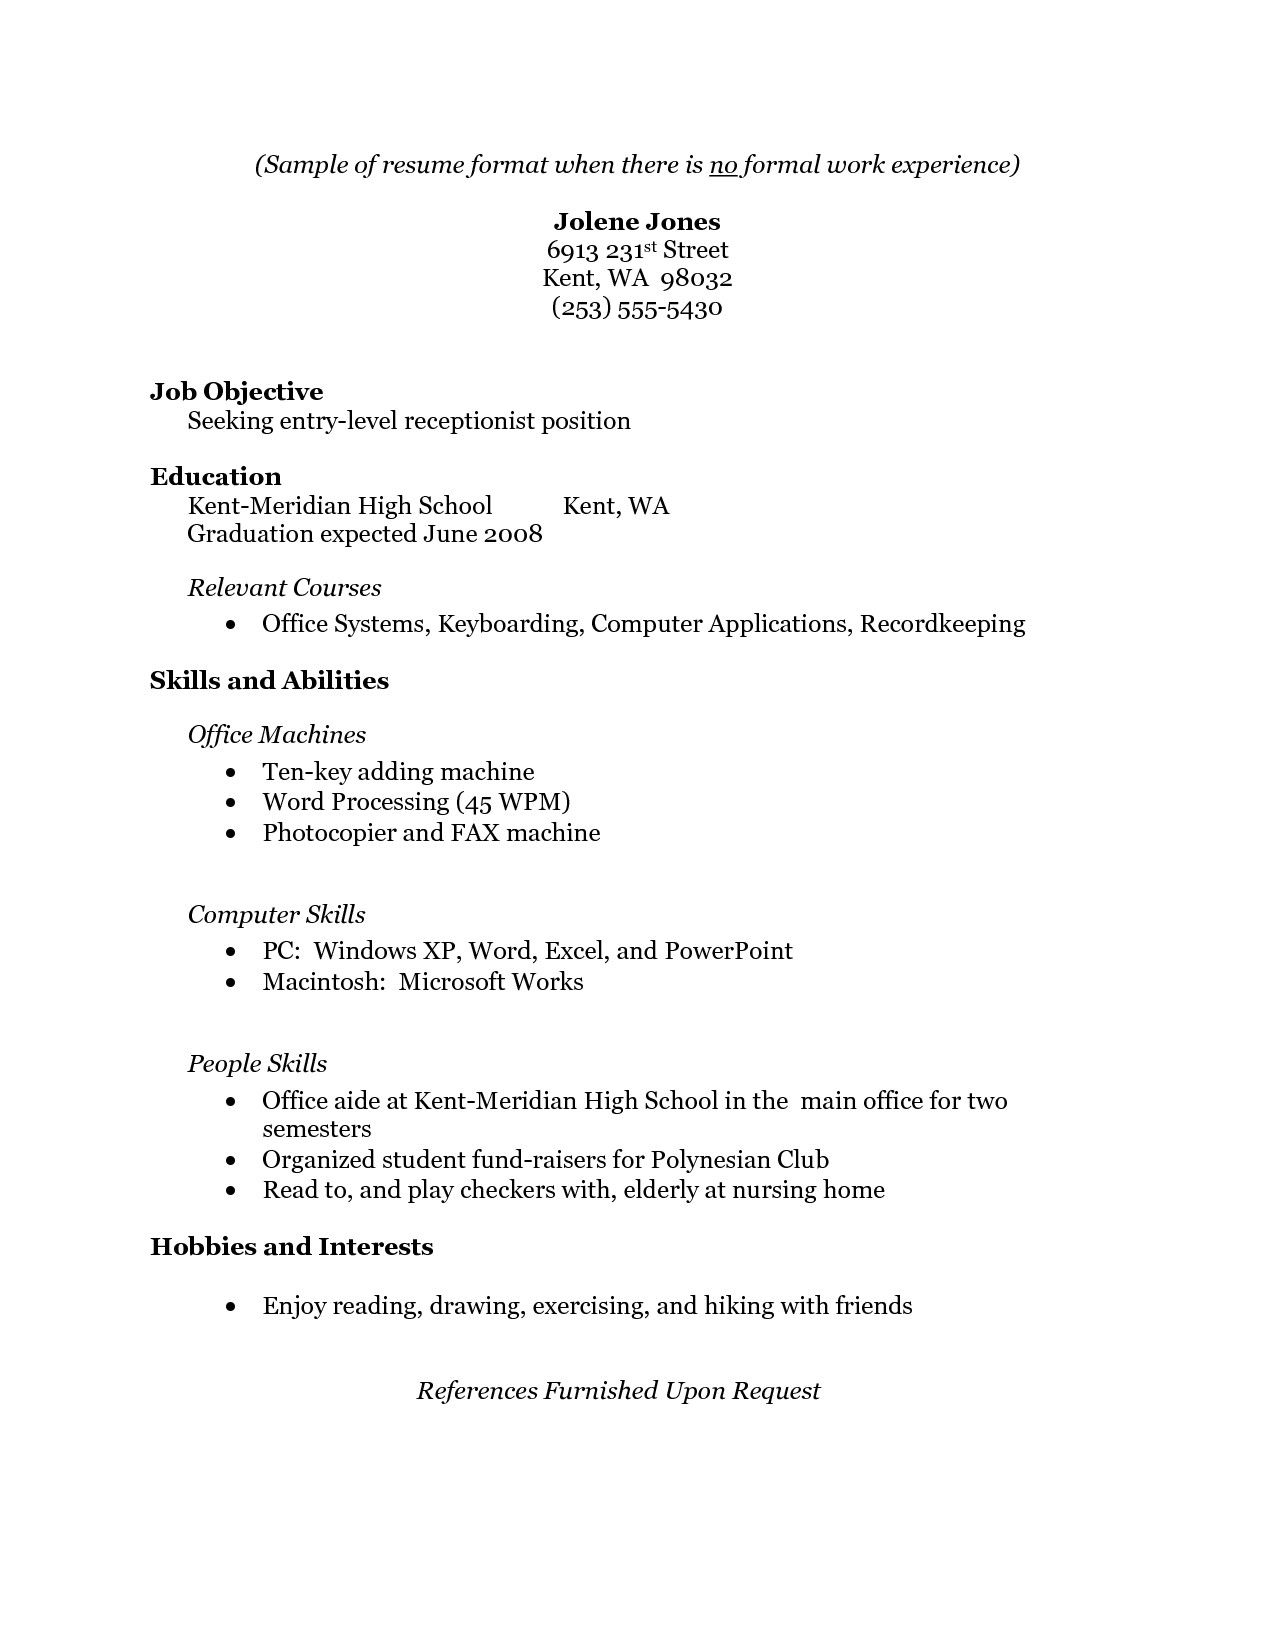 Free Resume Templates No Work Experience My Saves